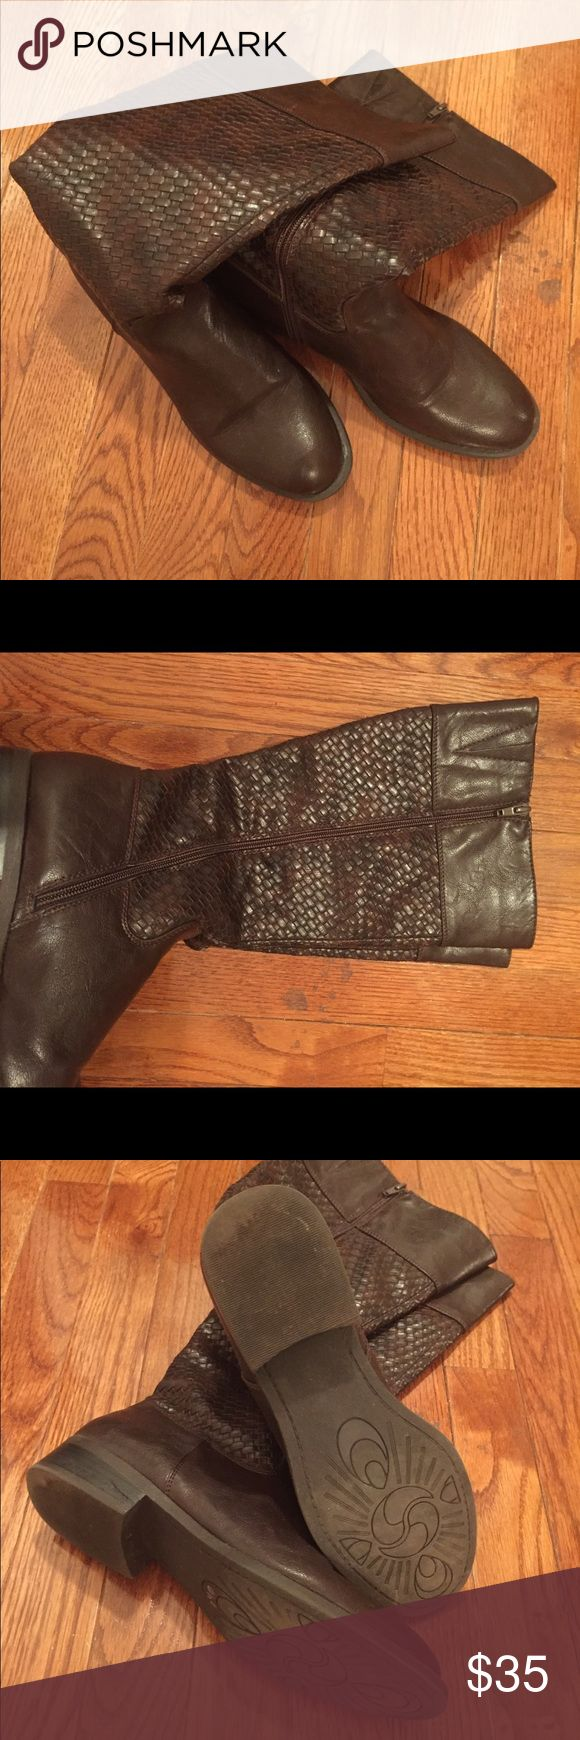 Rider Boots Brown Weave Woven Rider Boots White Mountain Shoes